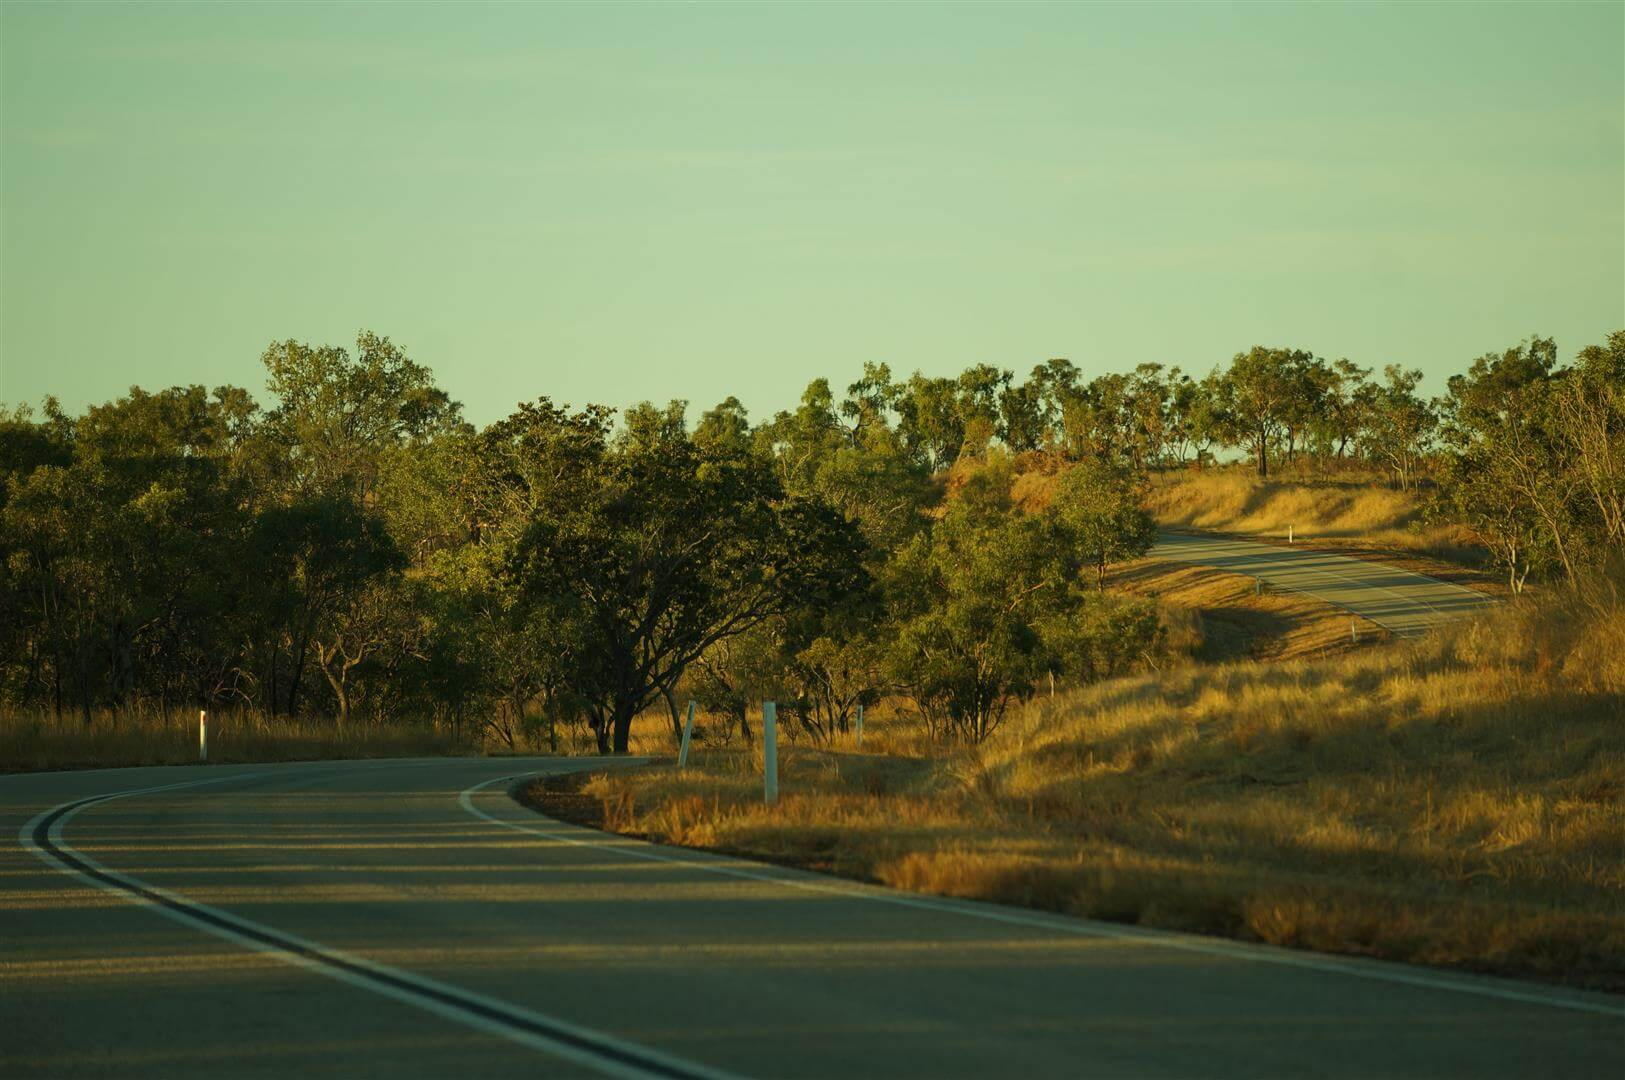 outback-australia-highway